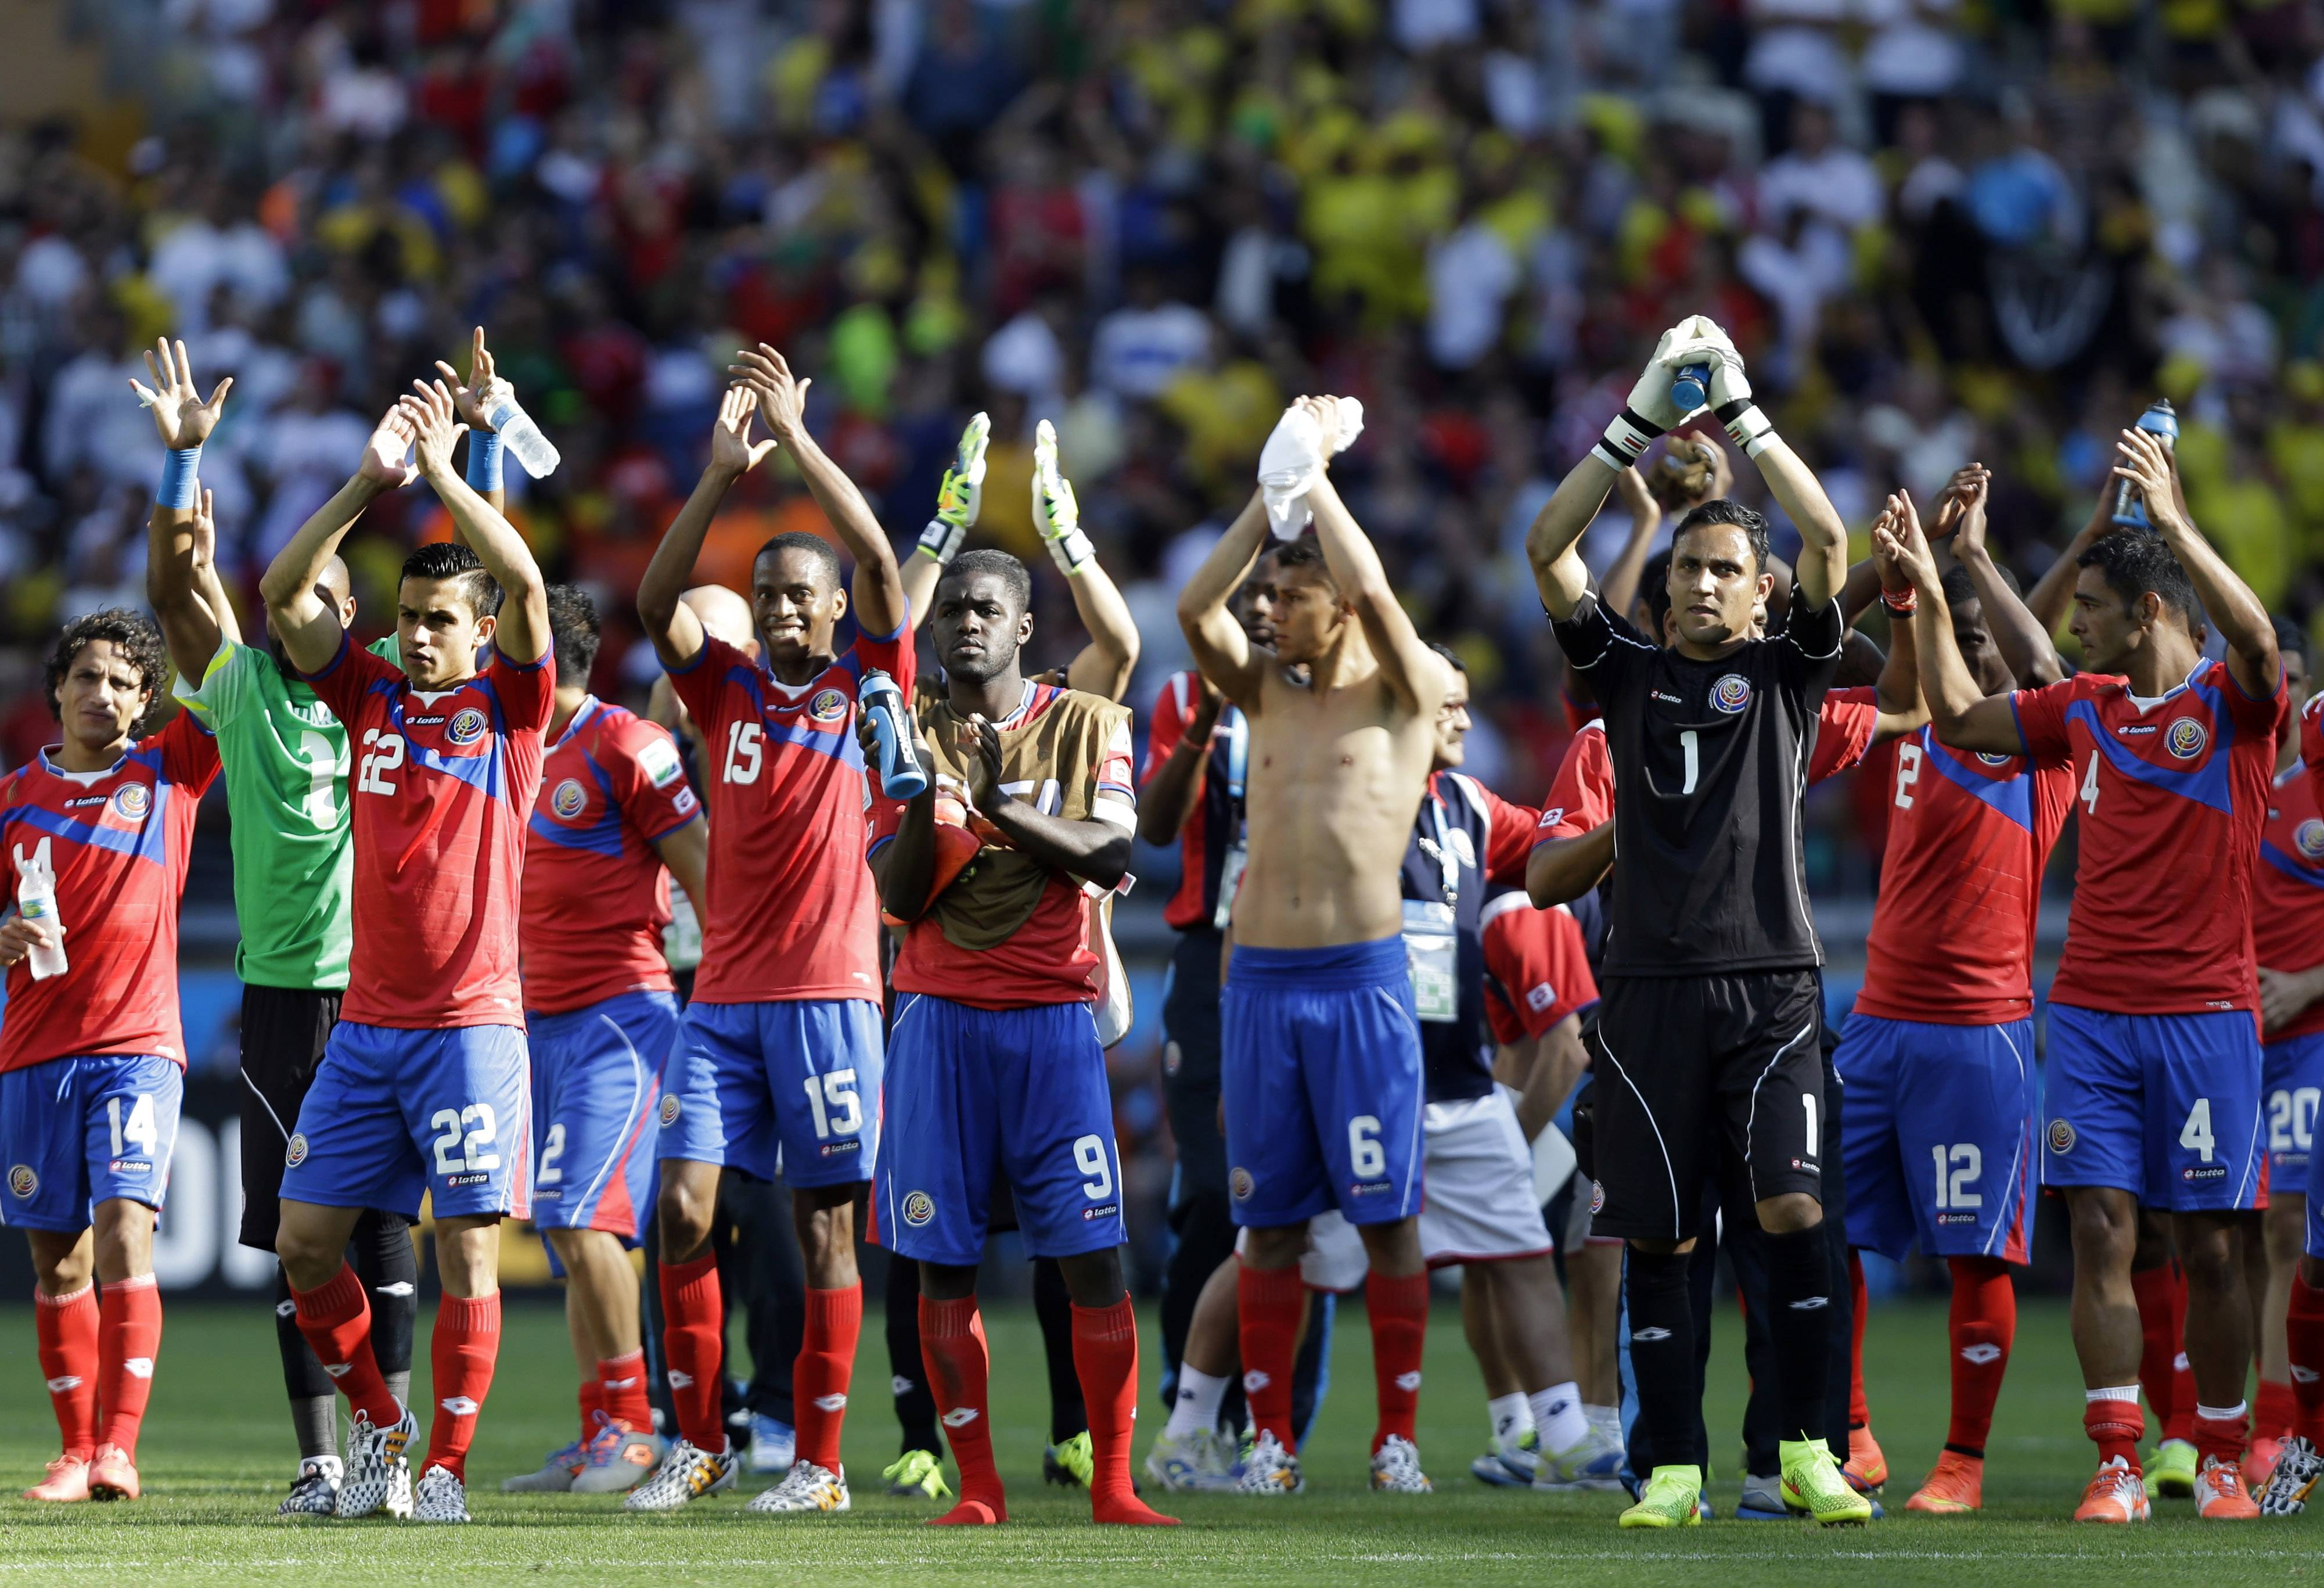 Costa Rica players greet supporters Tuesday after the Group D World Cup match against England at the Mineirao Stadium in Belo Horizonte, Brazil. Costa Rica has finished first in what many considered the World Cup's toughest group after a 0-0 draw against a second-string England side.